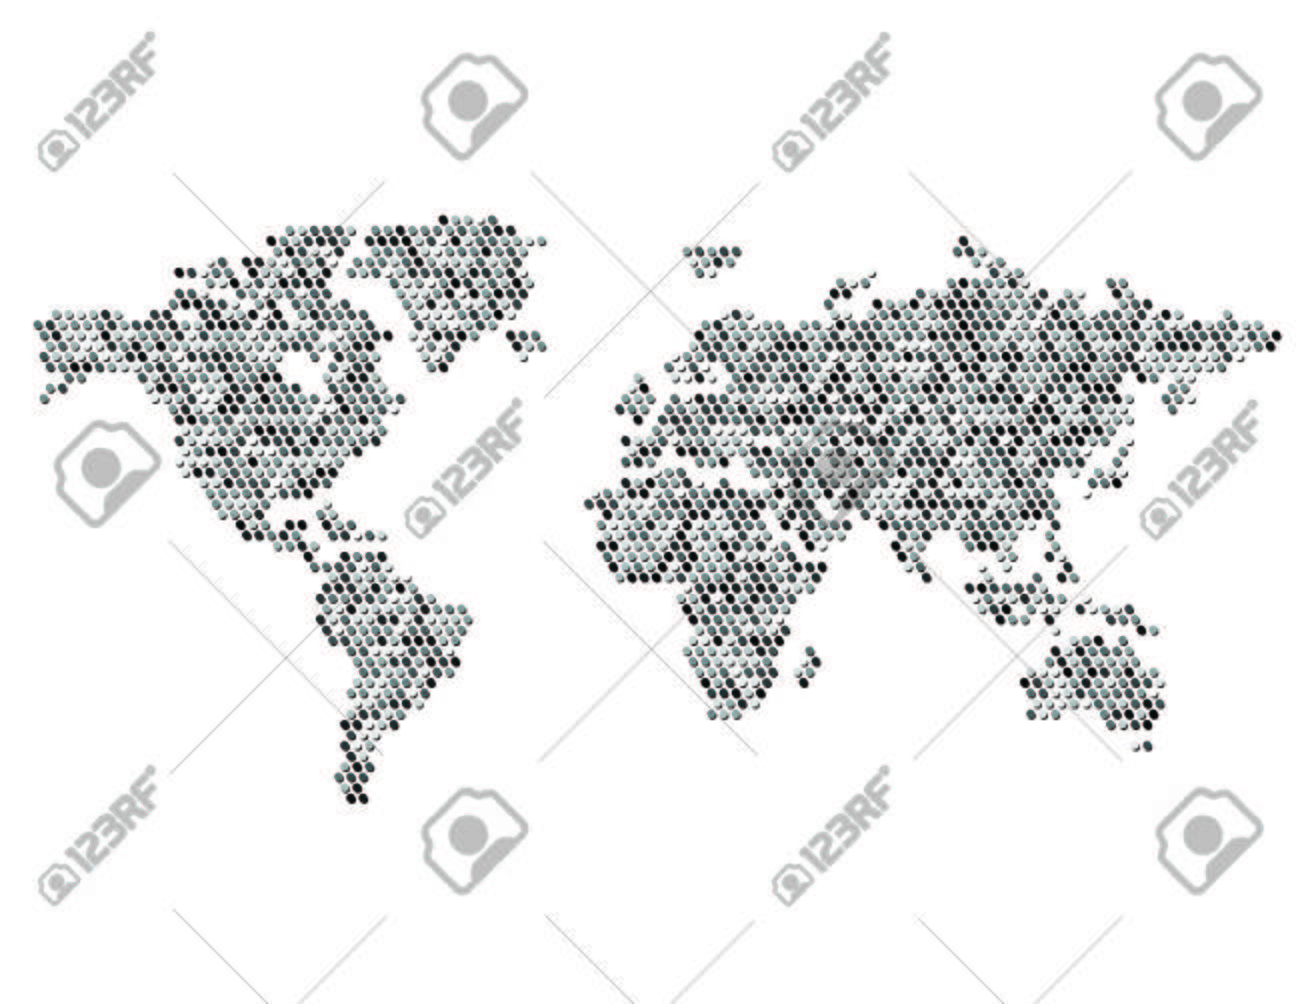 World map continents dots royalty free cliparts vectors and stock vector world map continents dots gumiabroncs Gallery